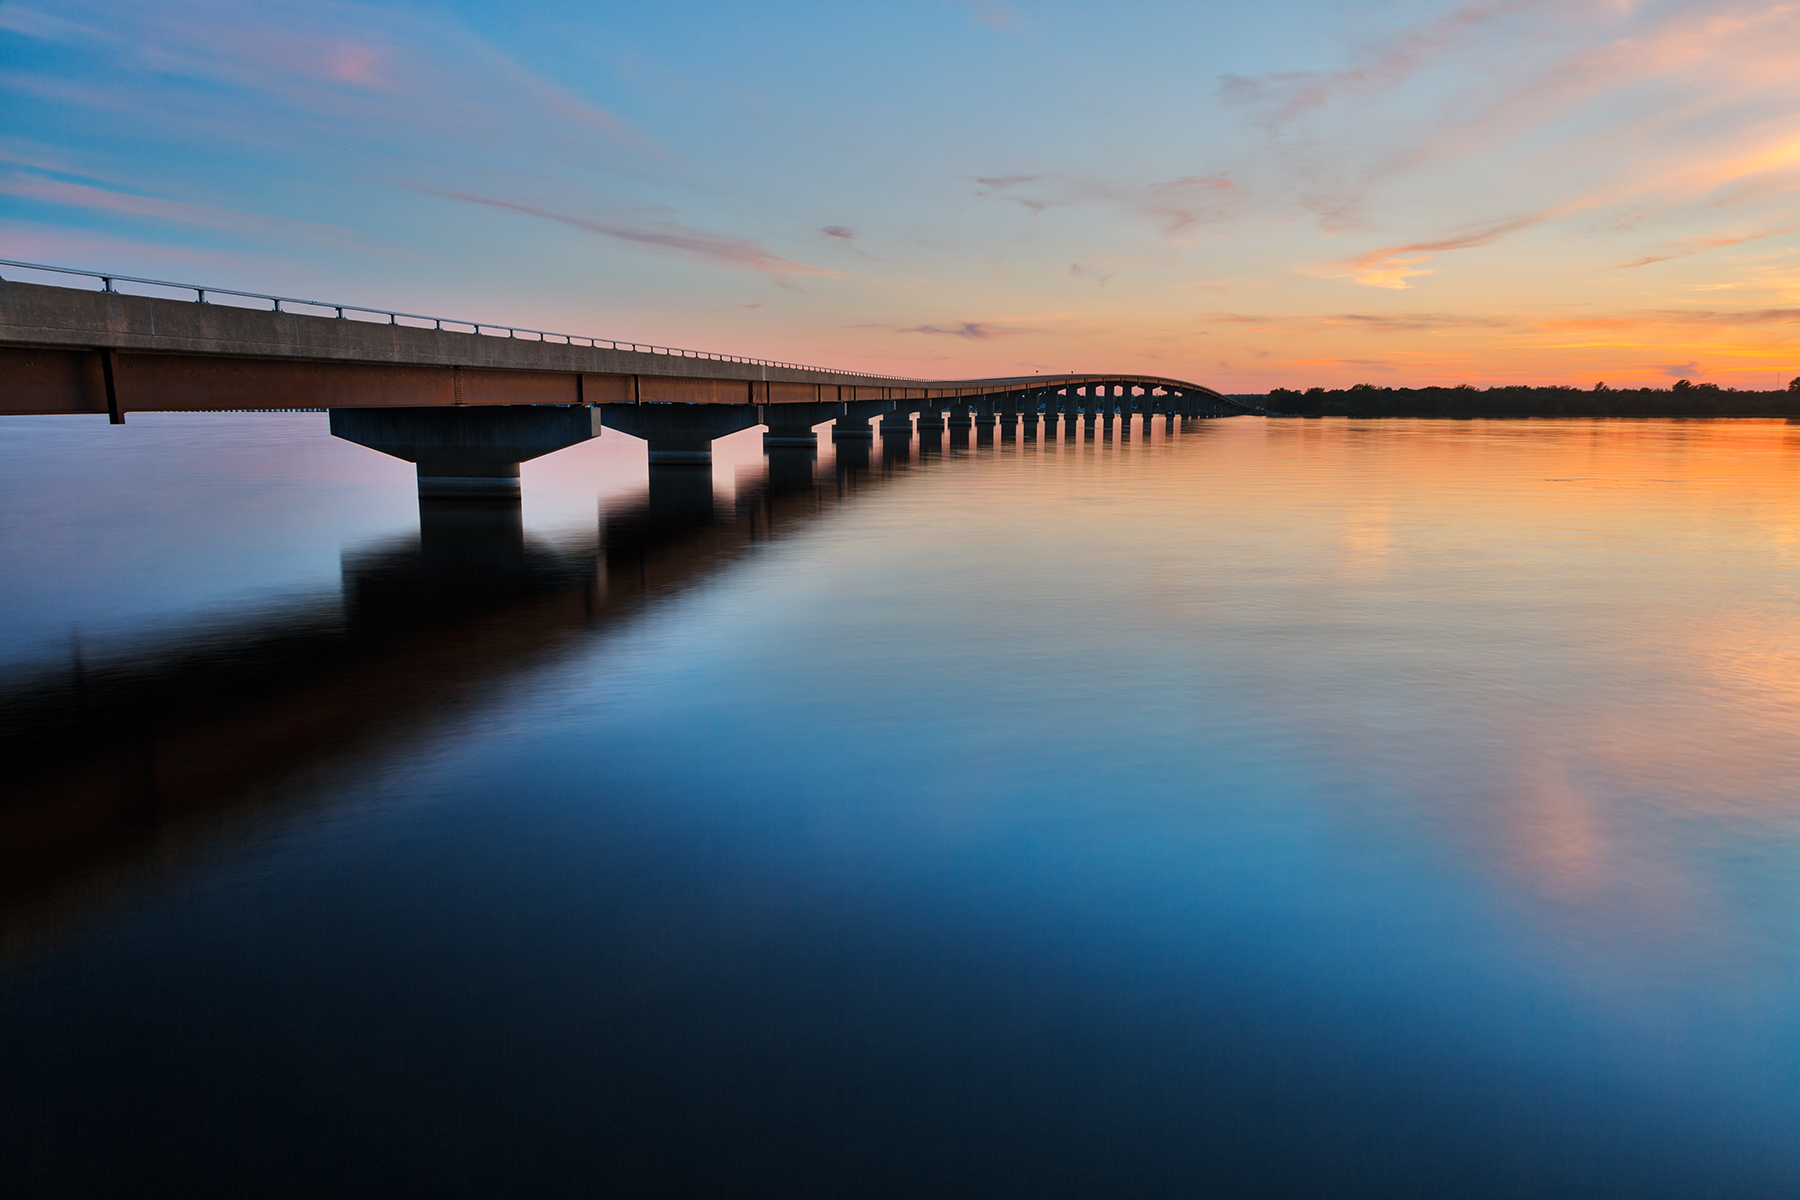 Free photo: Twilight Interstate Bridge - HDR - Scenic, Sea